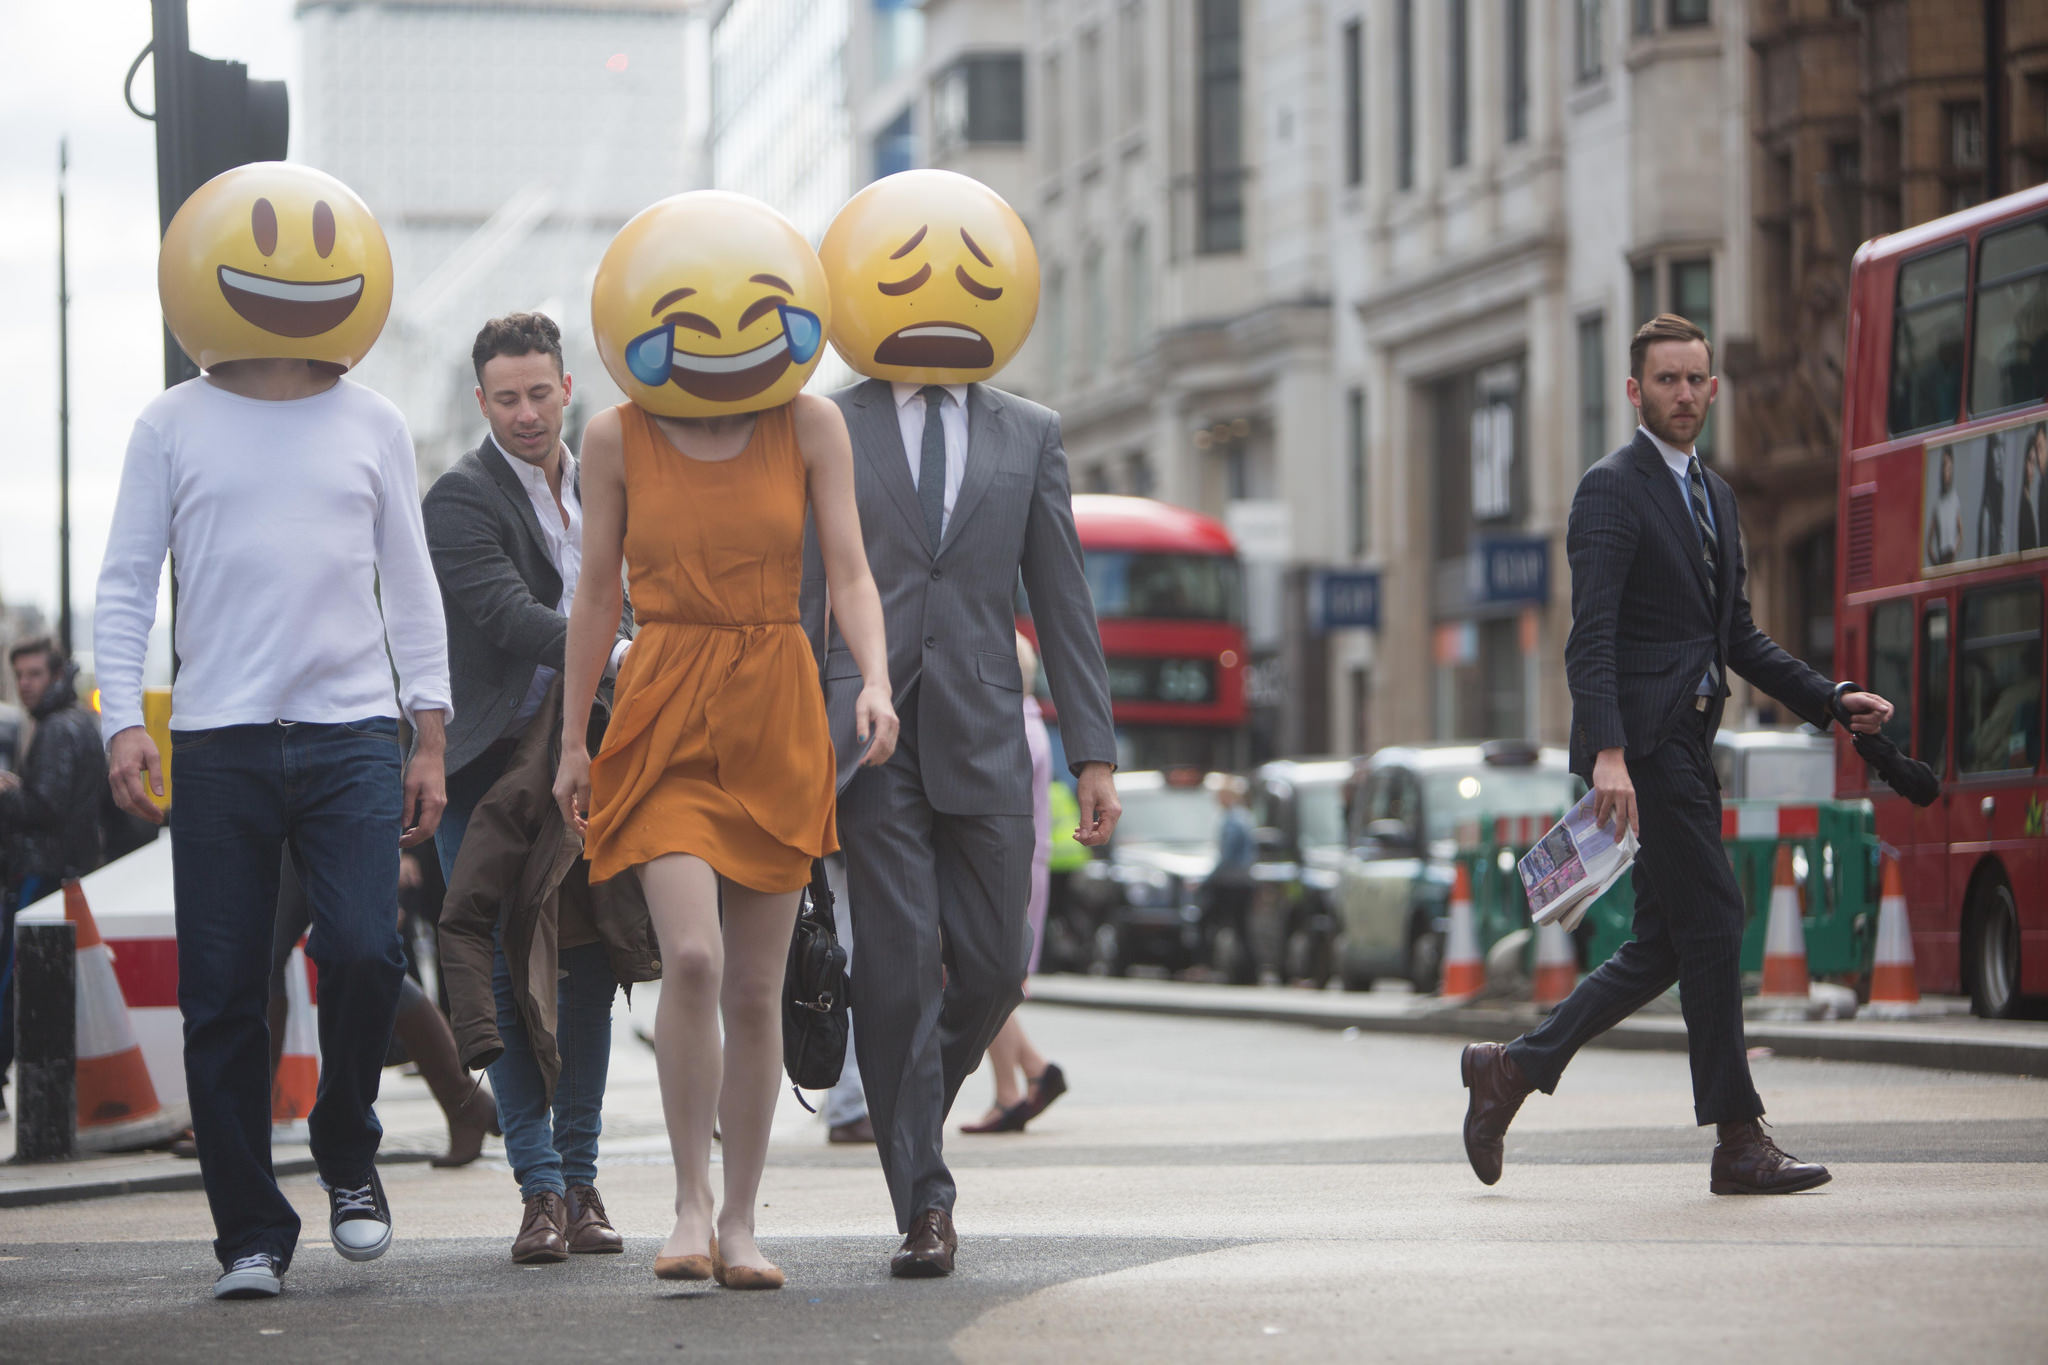 Emoji marketing or how brands are capitalising on emoji